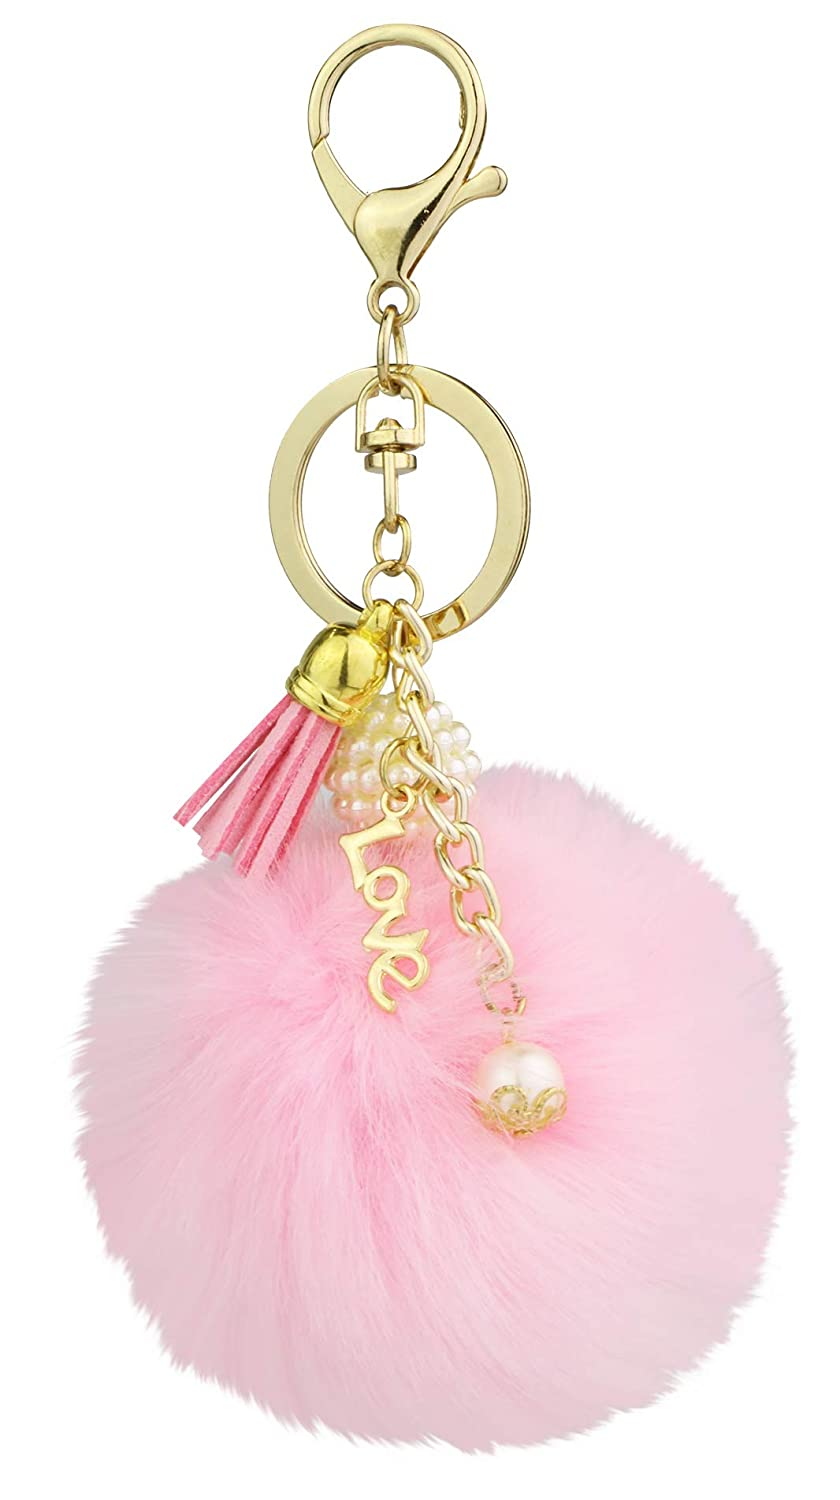 Amazon.com  Key Chain Accessories for Women - Pink Faux Fur Ball Charm and  Artificial Pearl with Key Ring  Office Products 23dd7140121e